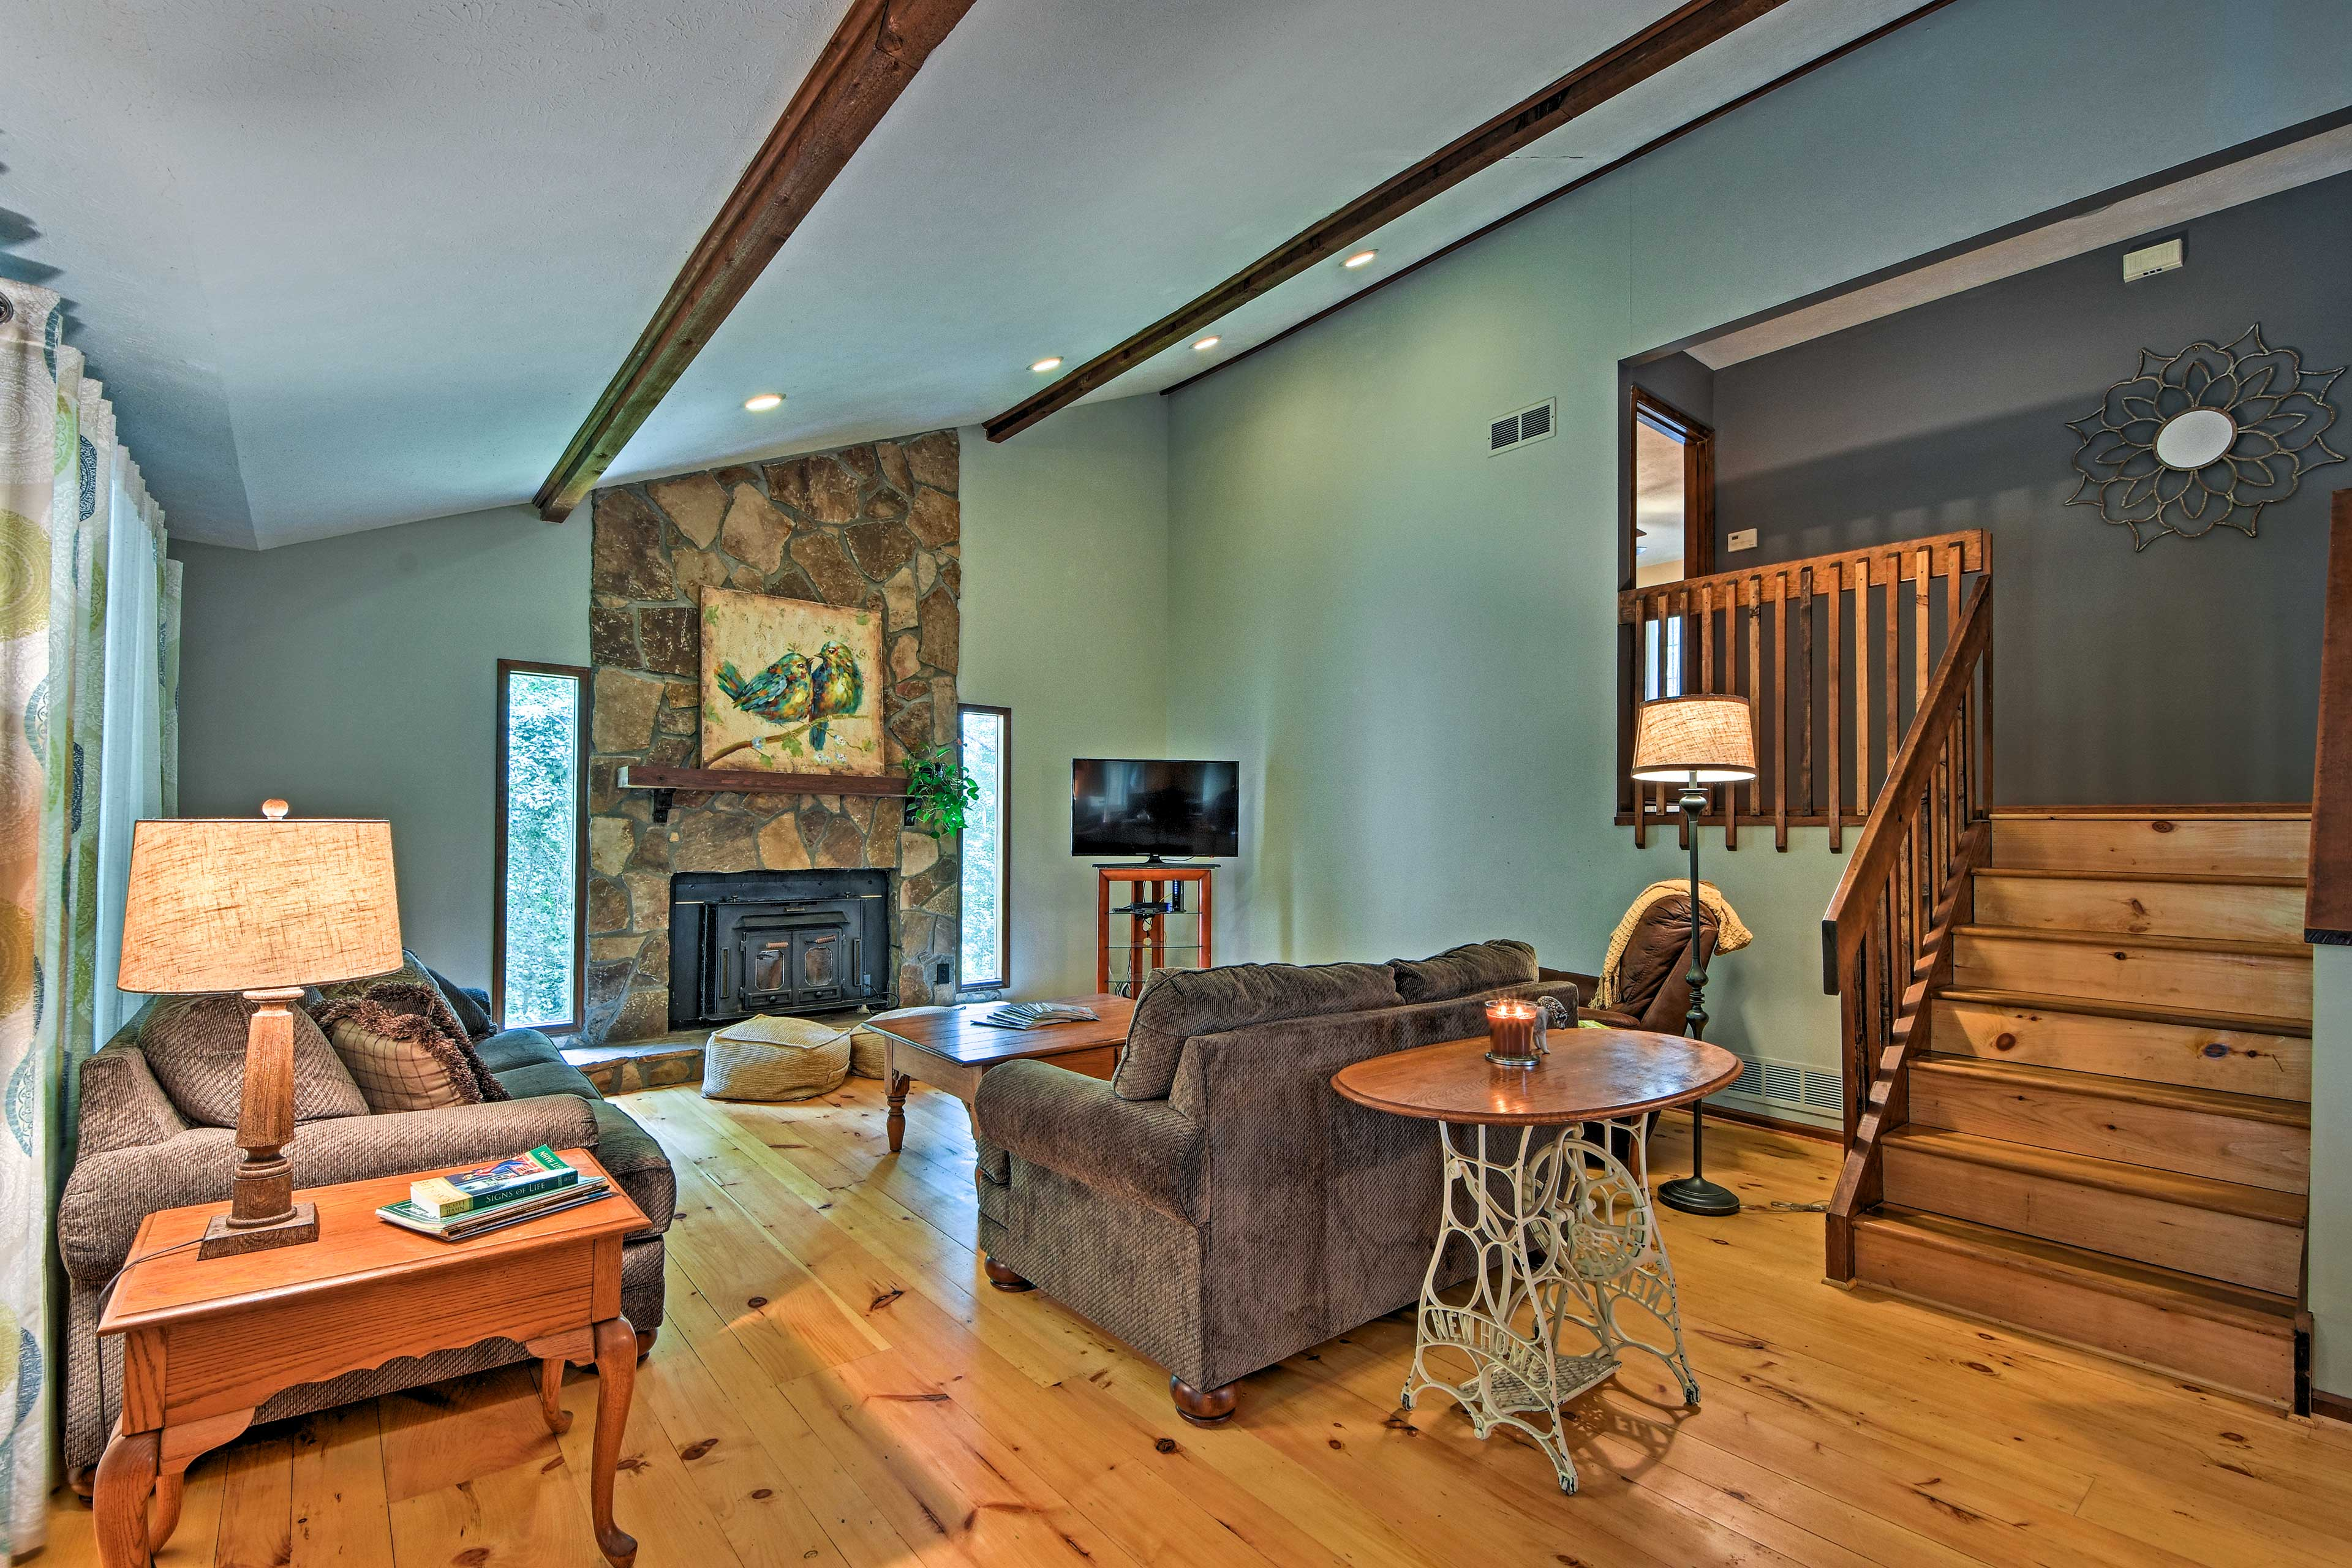 The split-level home boasts 4 bedrooms and 2 bathrooms to sleep 8 travelers.